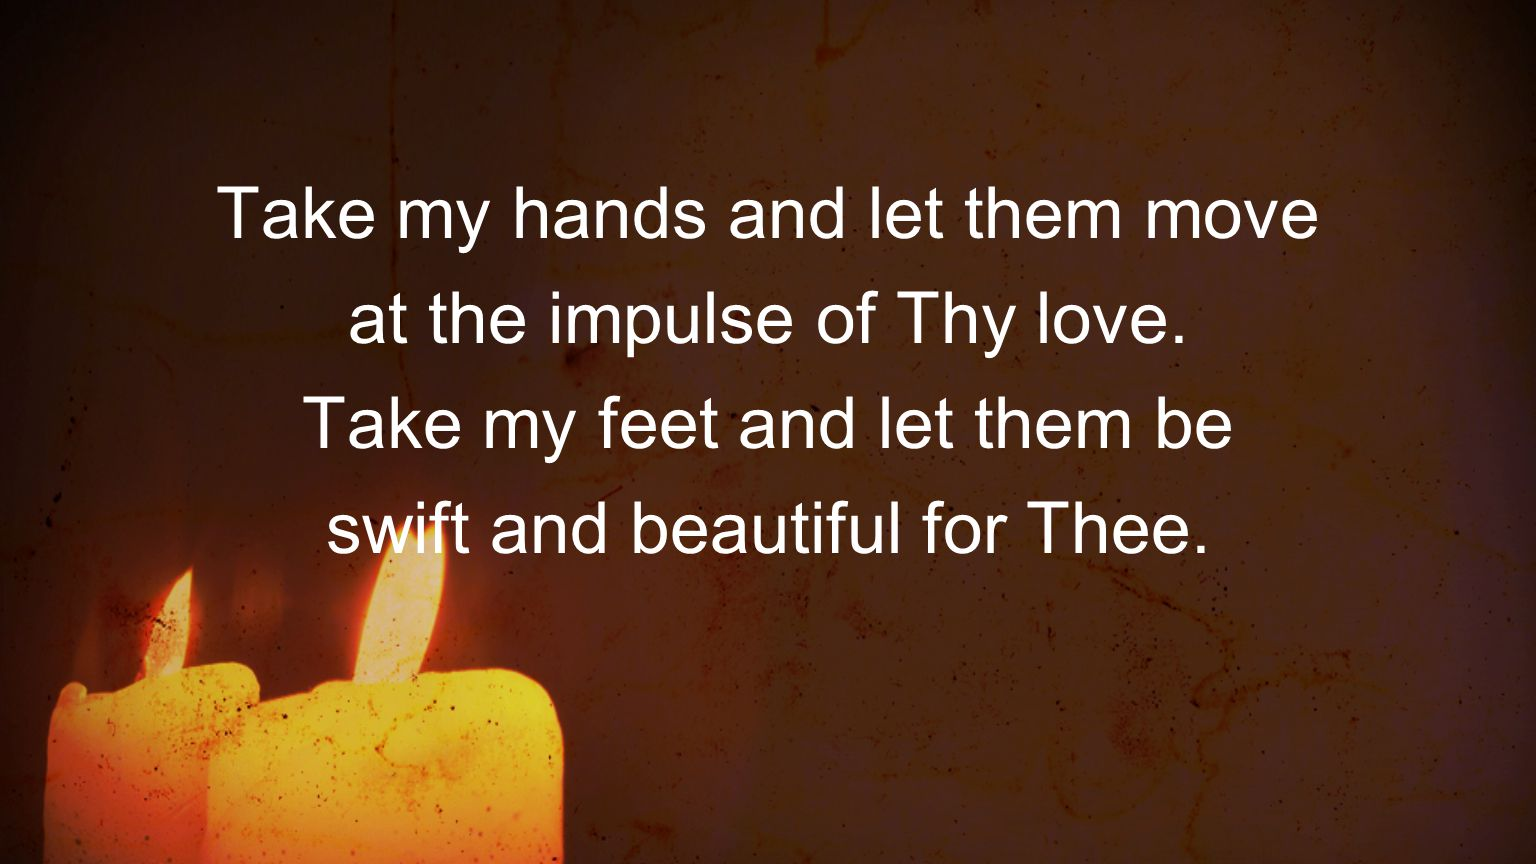 Take my hands and let them move at the impulse of Thy love.